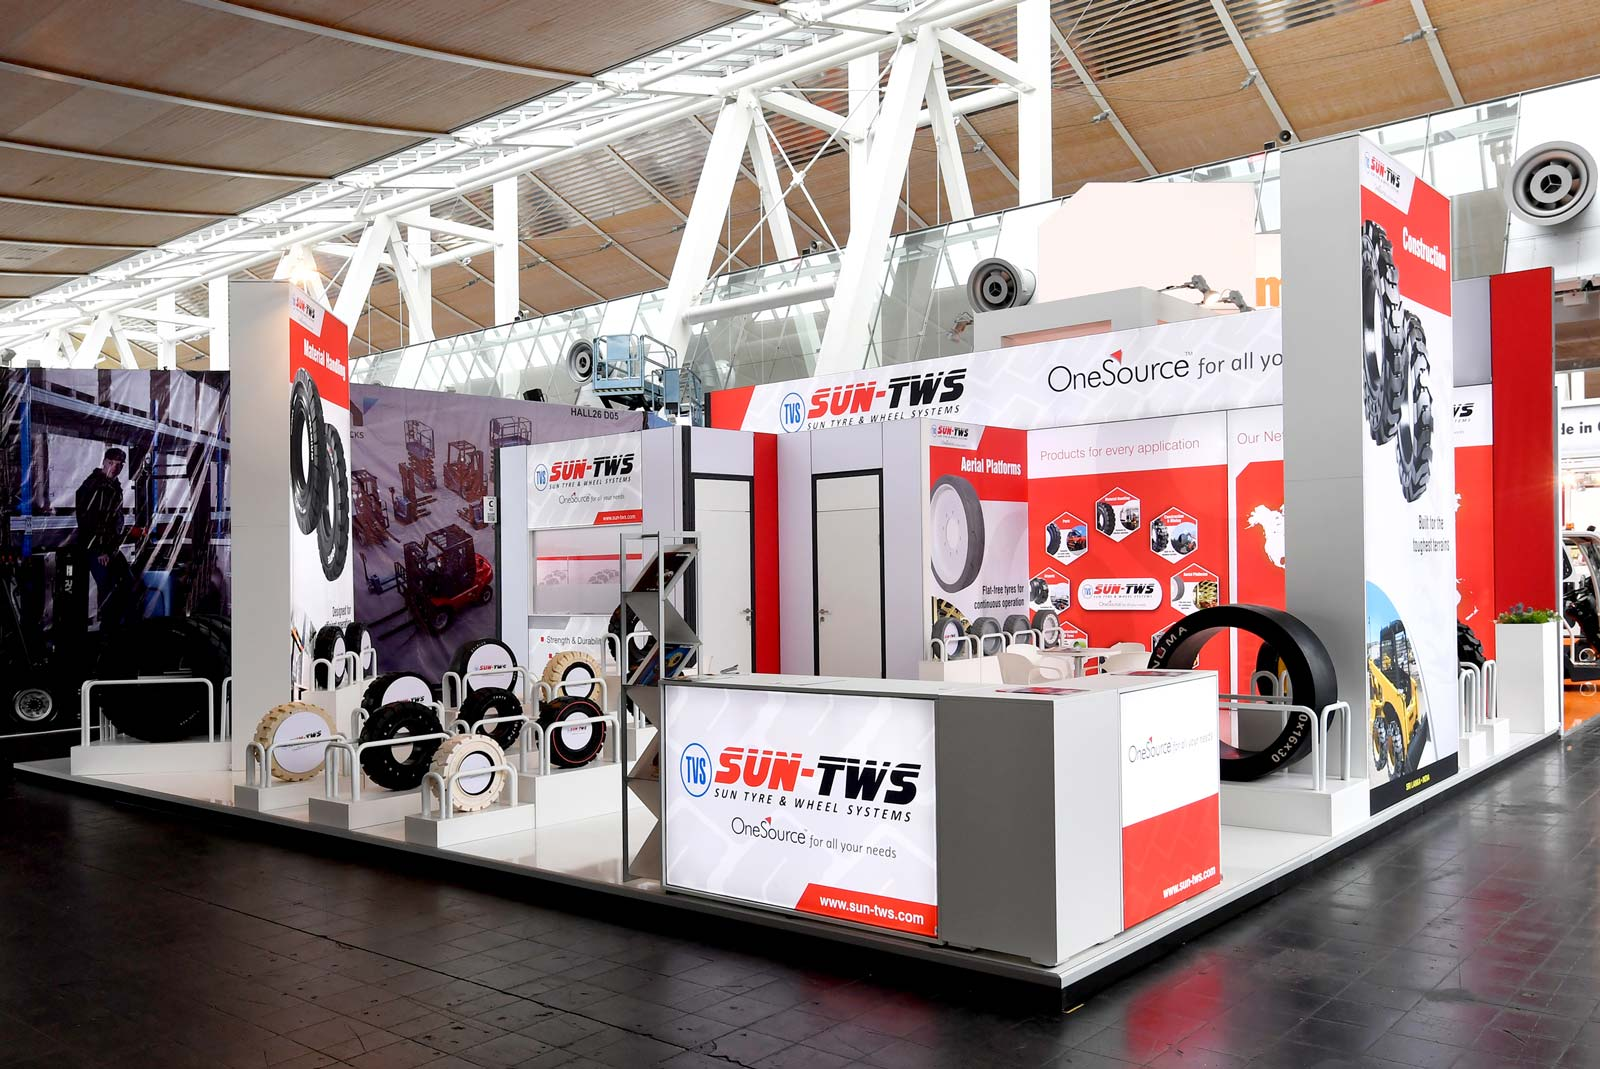 Sun-Tyre-&-Wheel-Systems-CeMAT-2018-Hannover-Germany.jpg